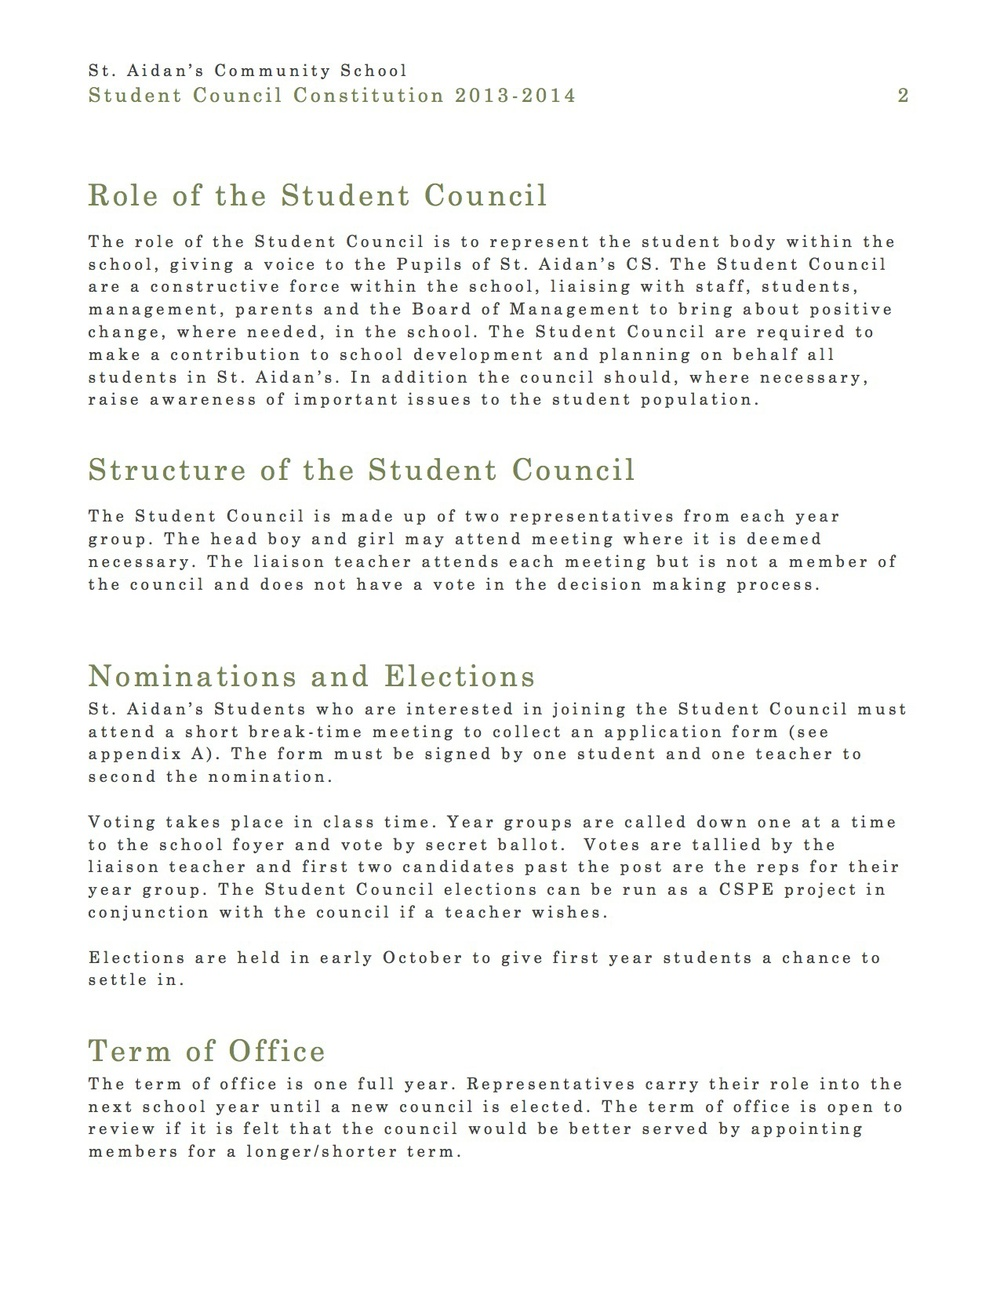 Student Council Constitution Doc 2.jpg